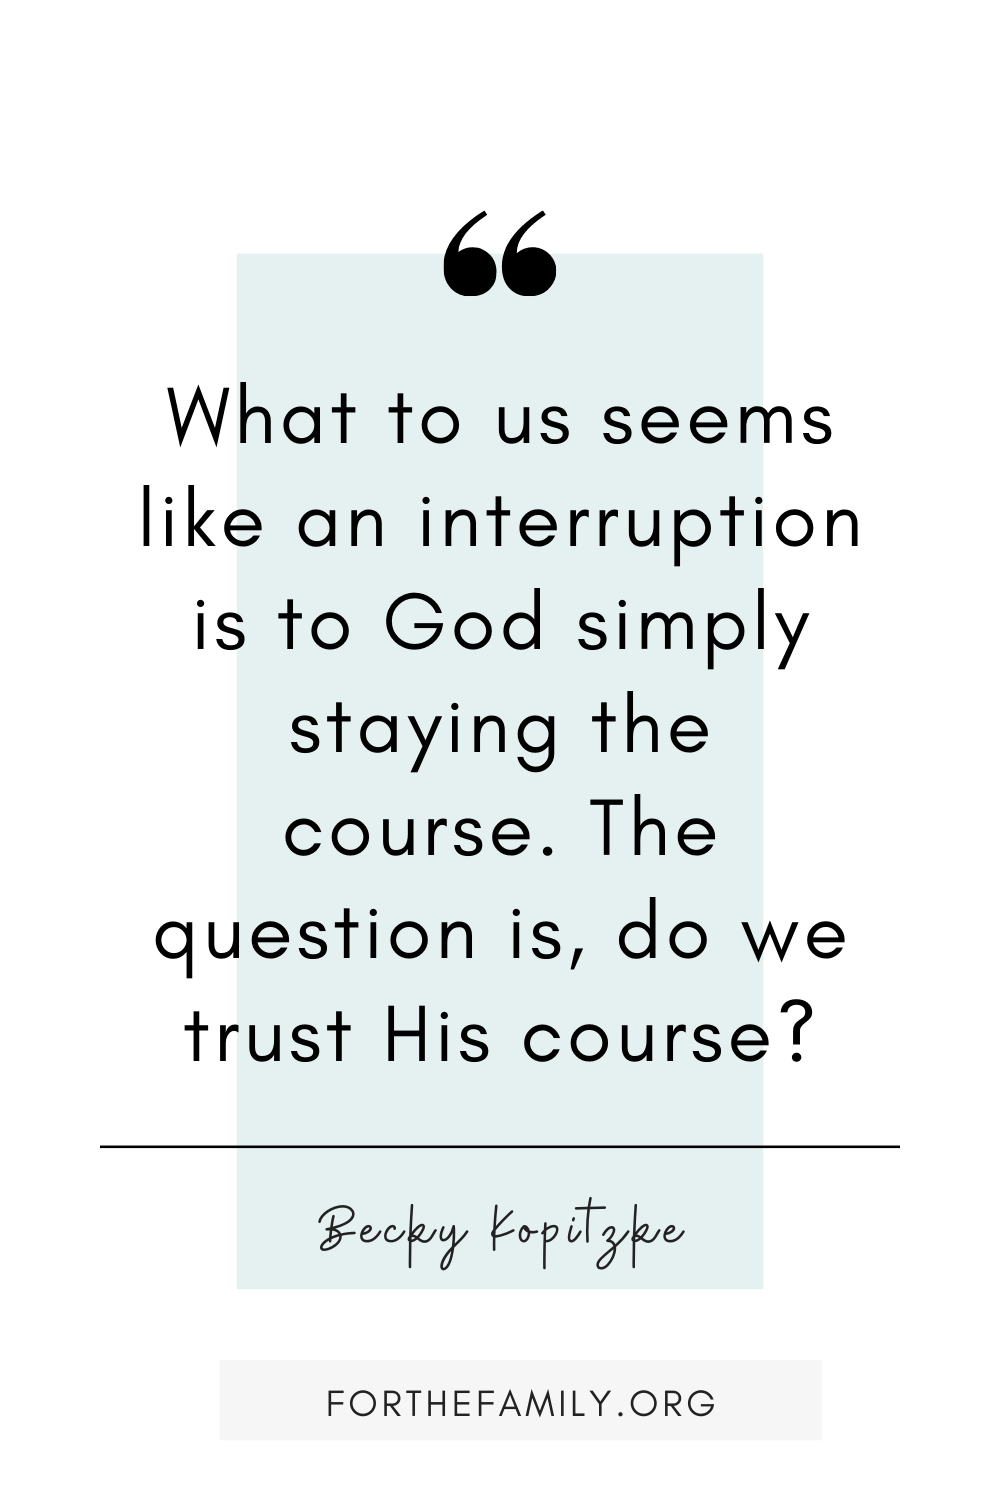 What to us seems like an interruption is to God simply staying the course. The question is, do we trust His course?